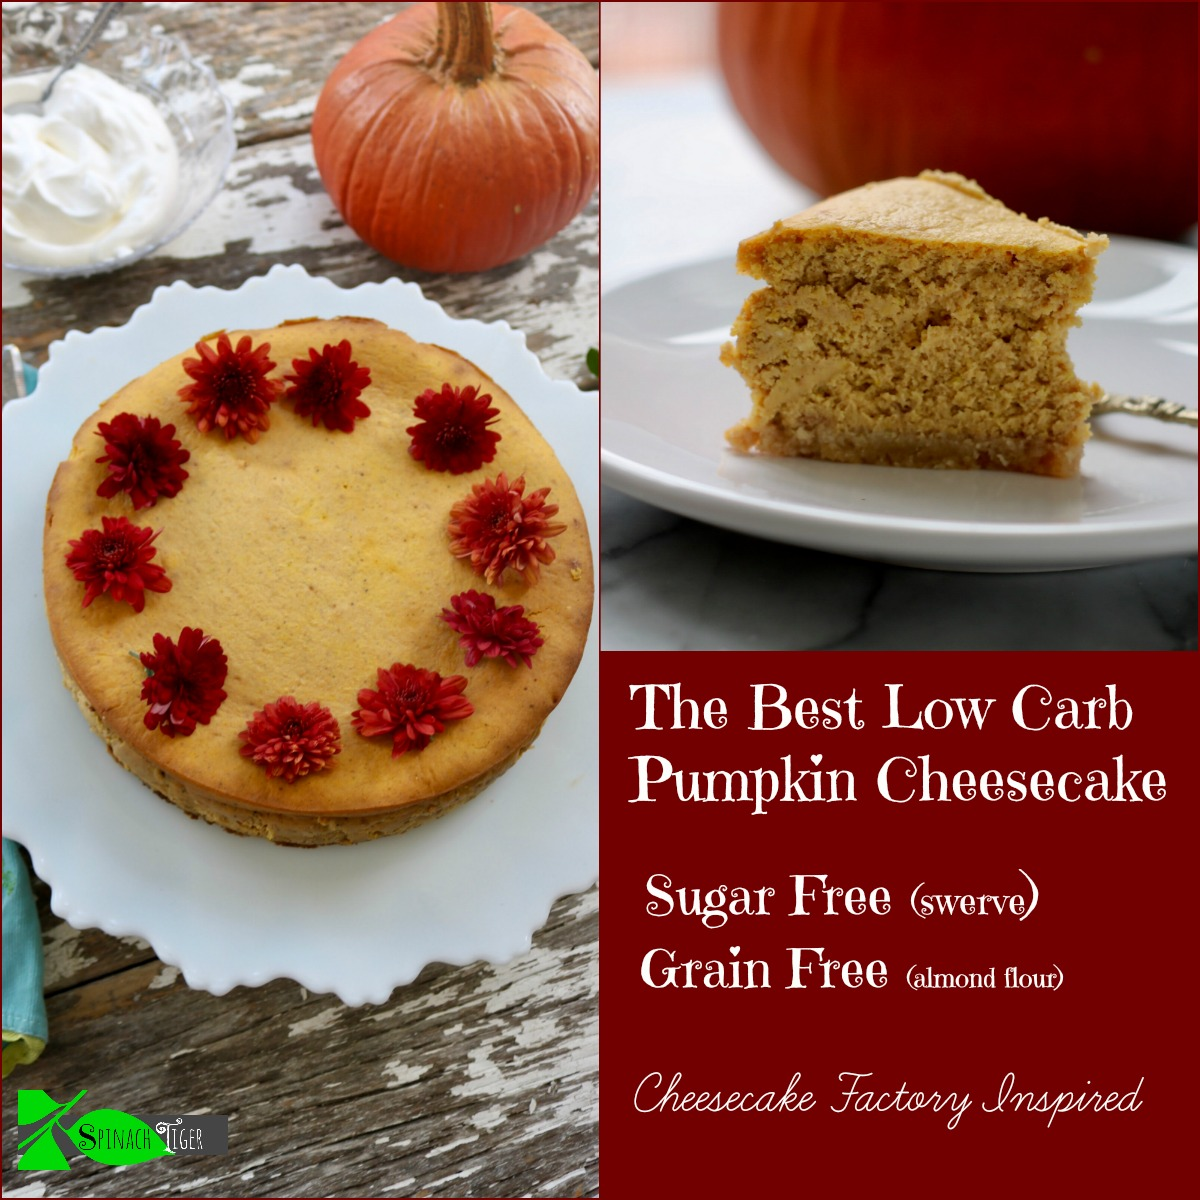 How to Make Low Carb Pumpkin Cheesecake Recipe from Spinach Tiger